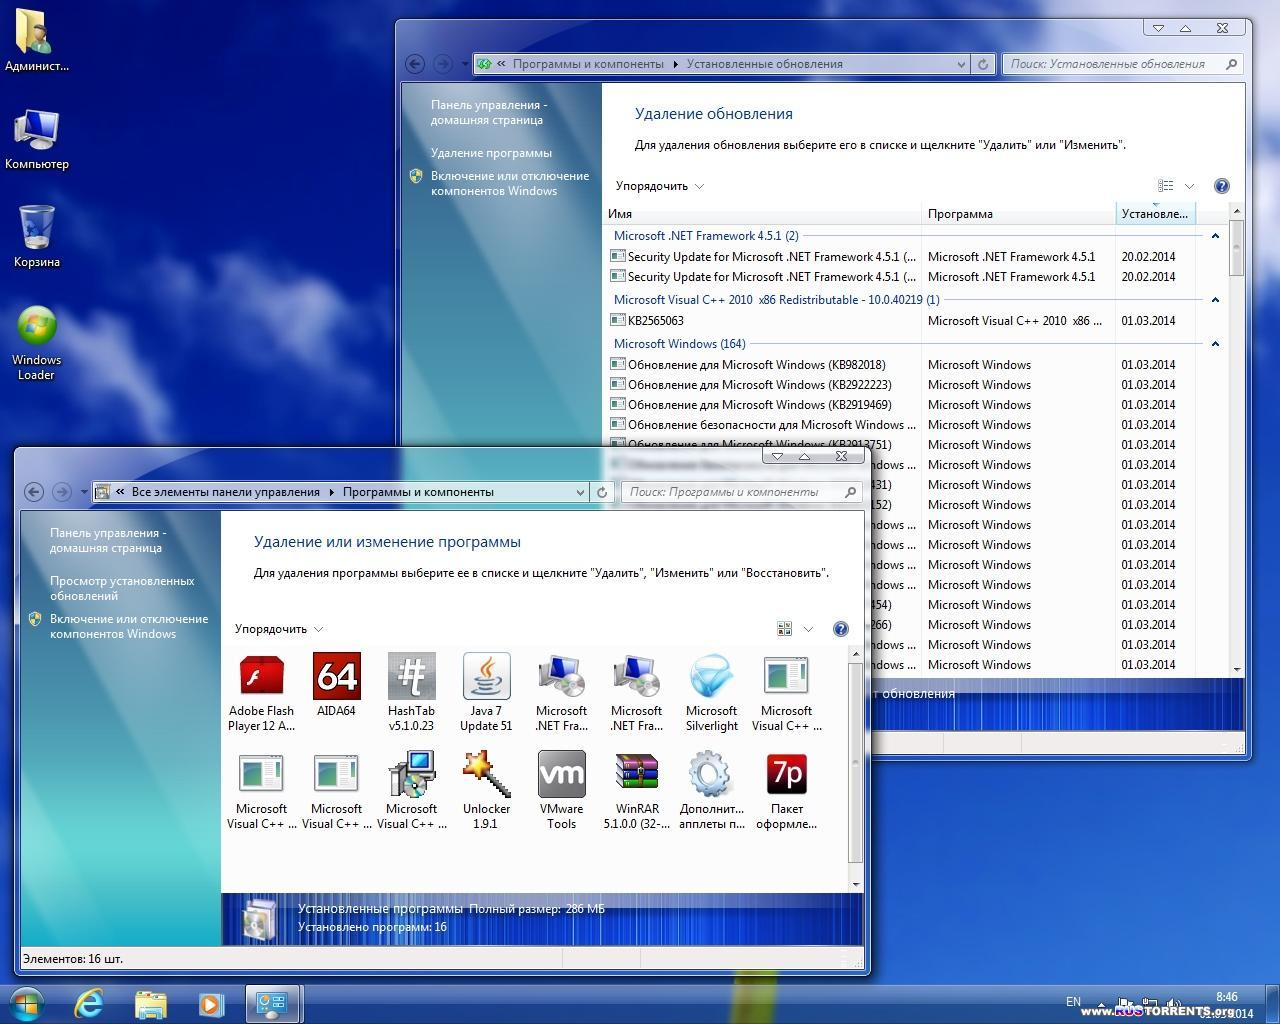 Windows 7 SP1 BEST 7 х86/х64 Edition Release 5in1 v.14.2.4